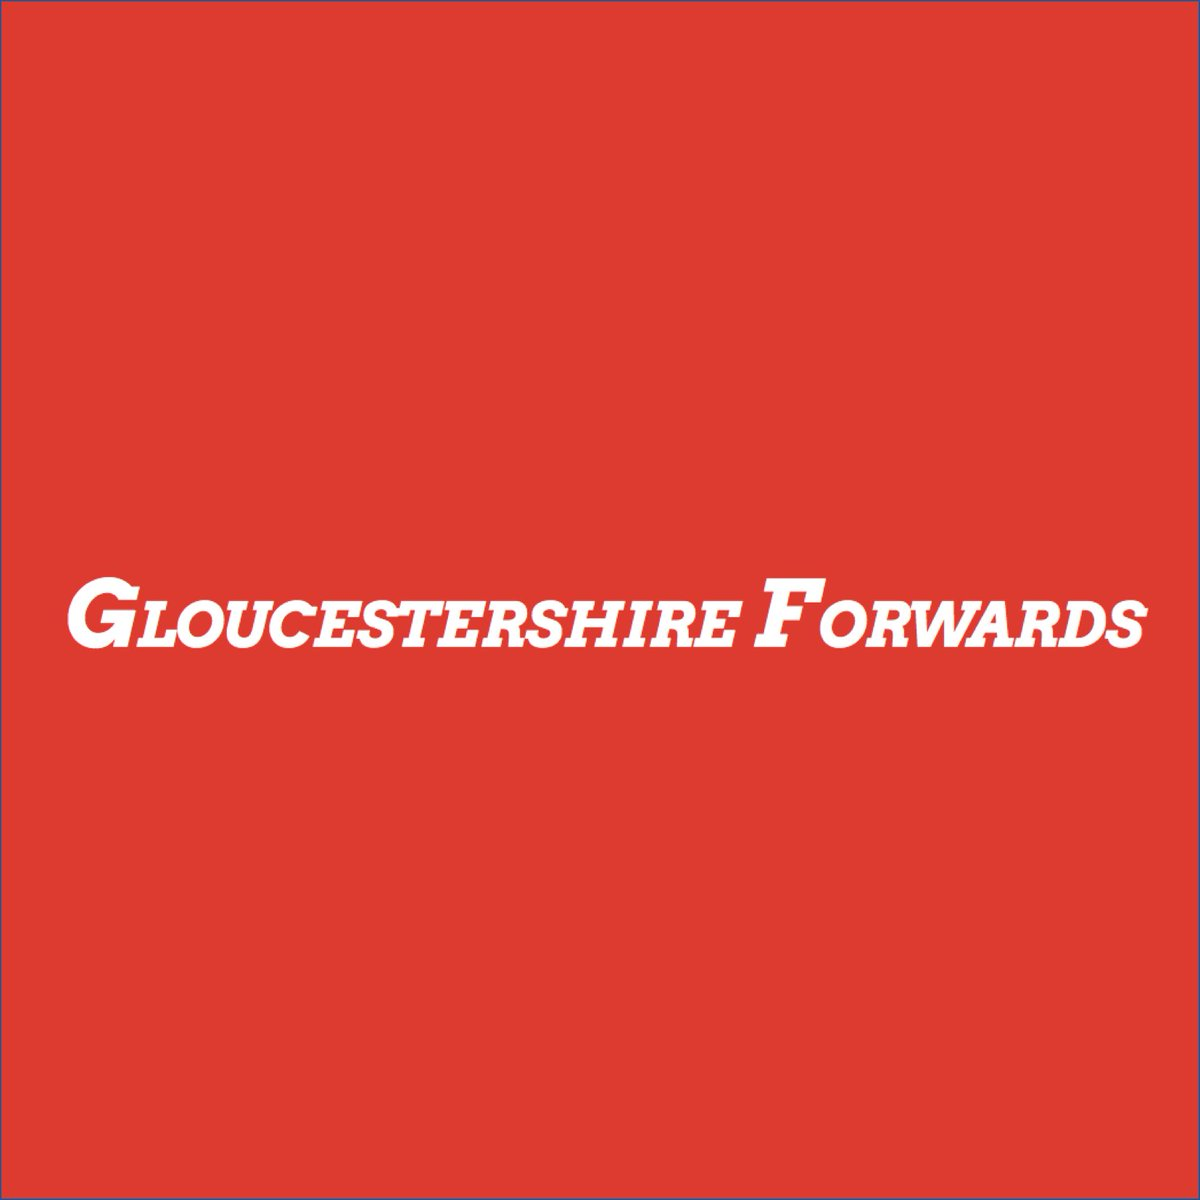 Join us for the next Gloucestershire Networking Breakfast. 31st March at Kingsholm, Gloucester. 7.30am to 9am. 2 great speakers lined up and loads of local businesses in the room to network with. Ticket via GRFC ticket office http://ow.ly/kBVa50xQ86zpic.twitter.com/kxCRObiNOt